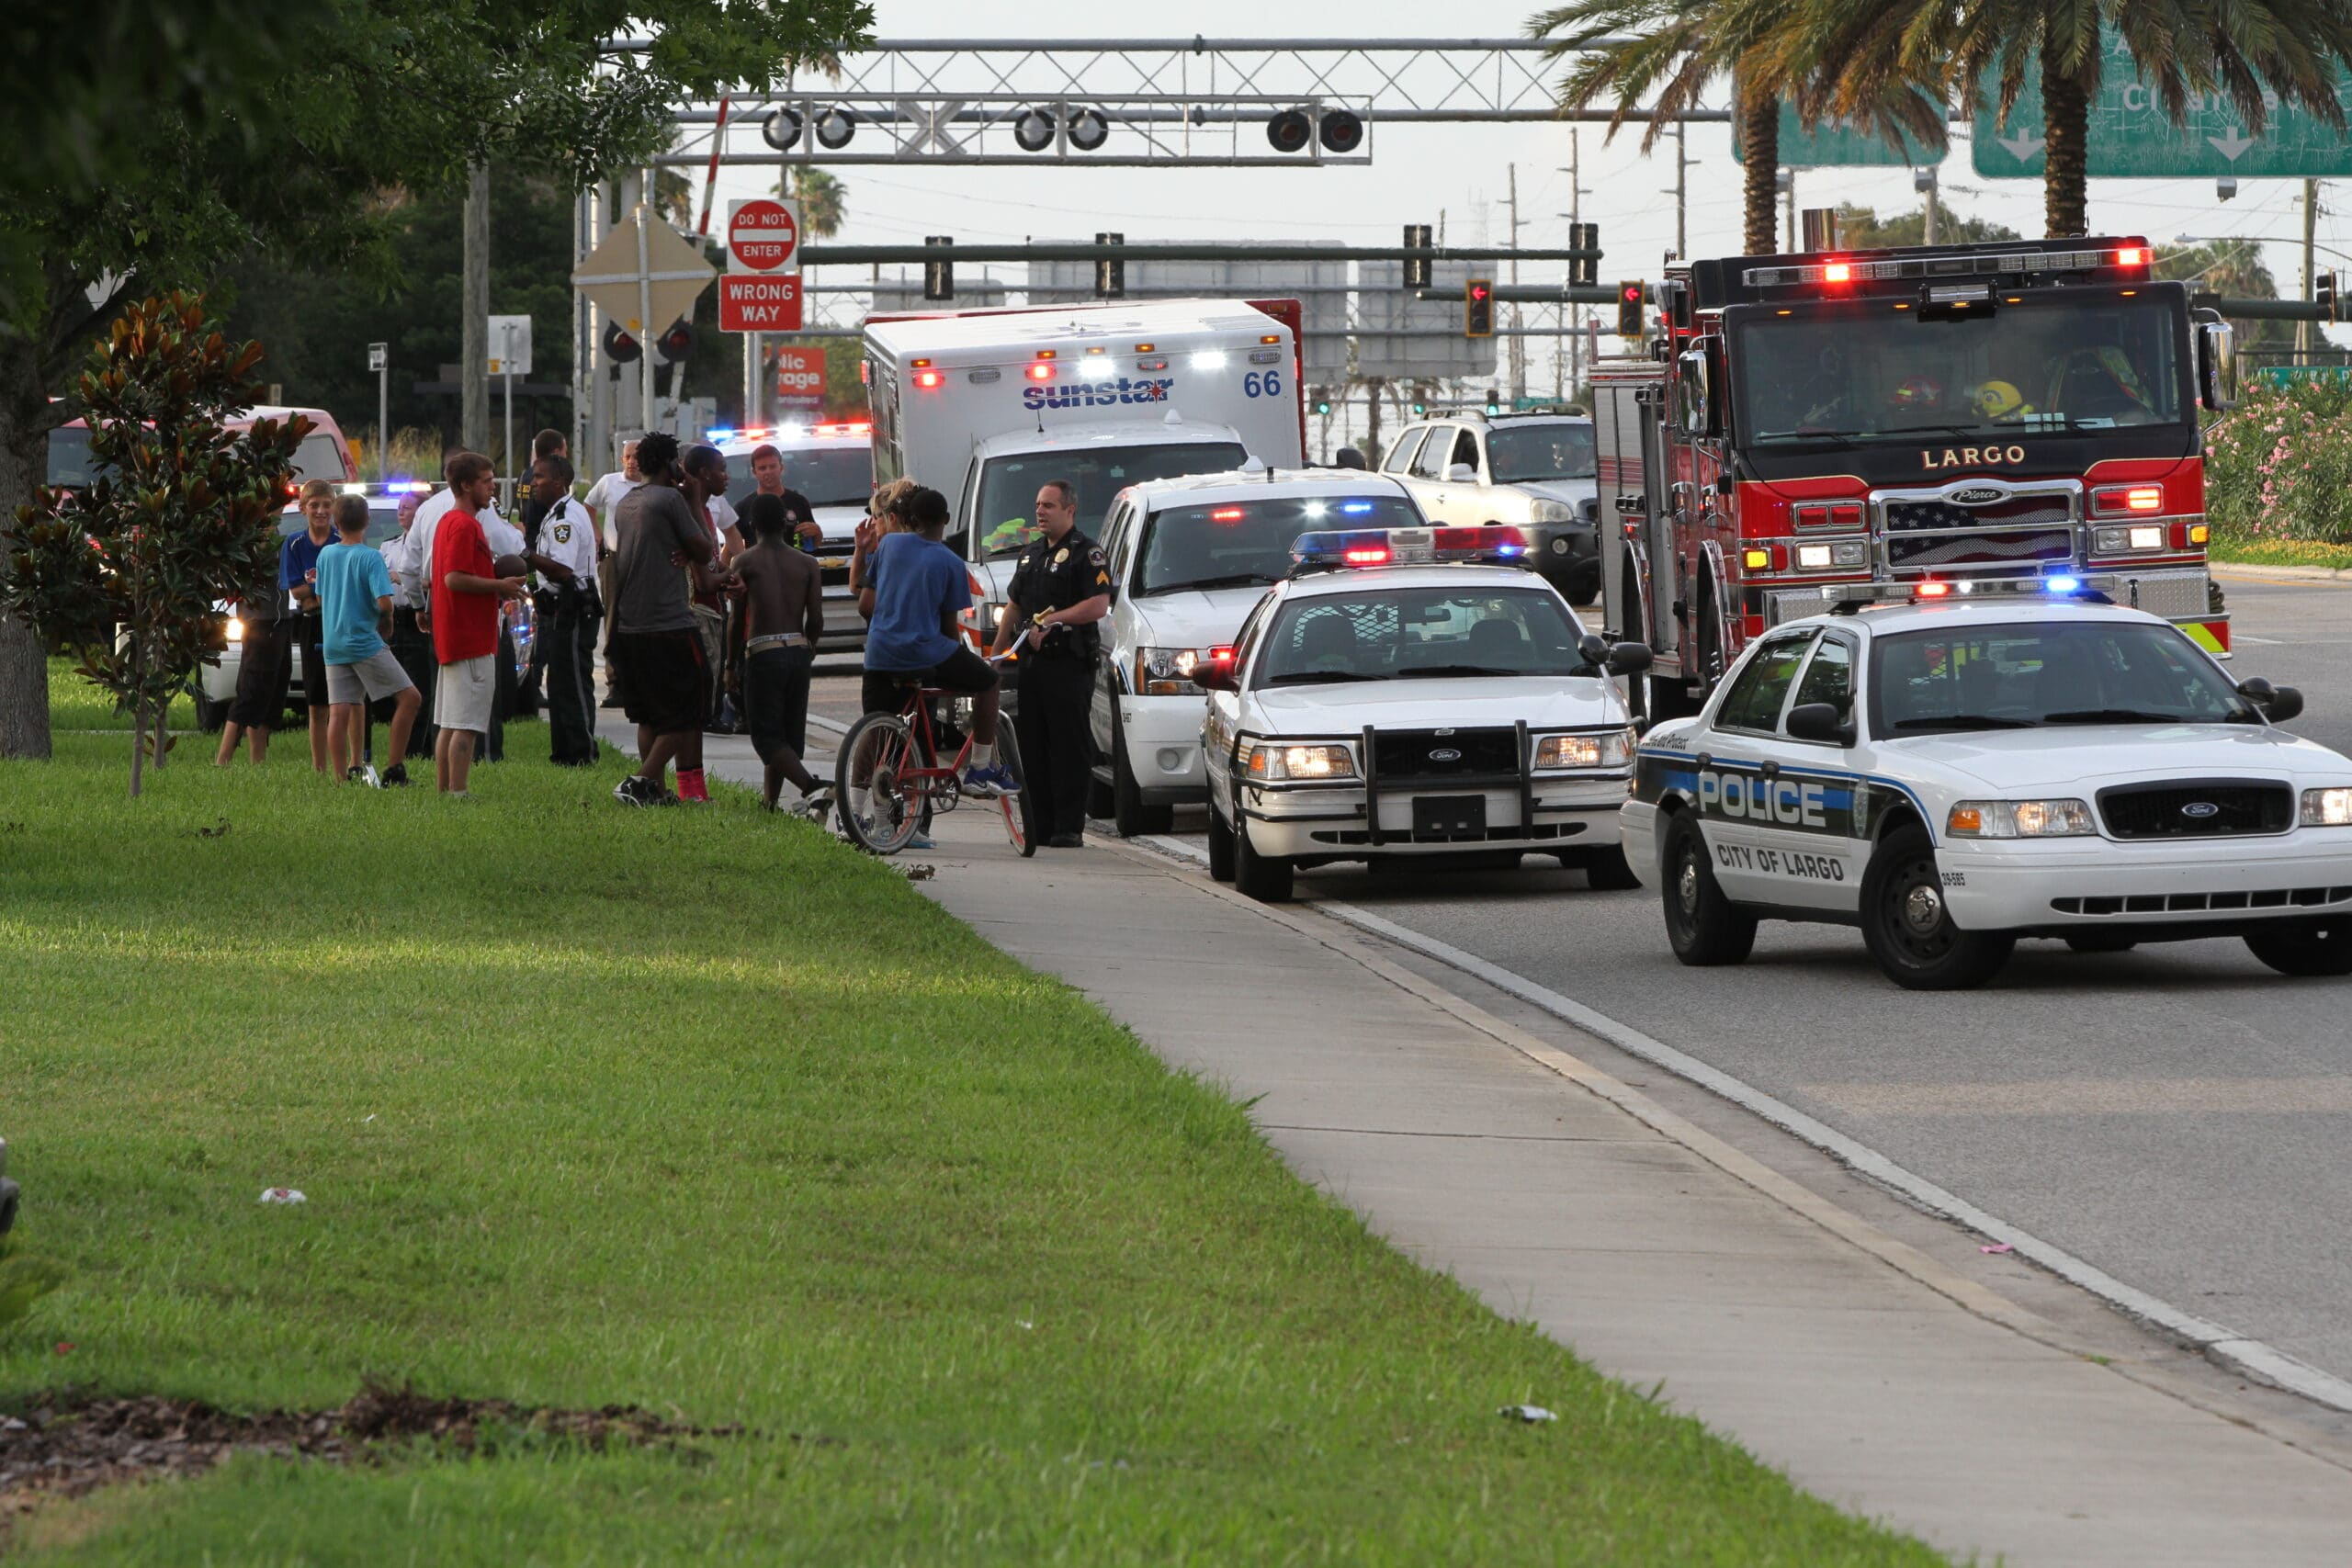 Shooting at the Bayhead Recreation Complex in Largo